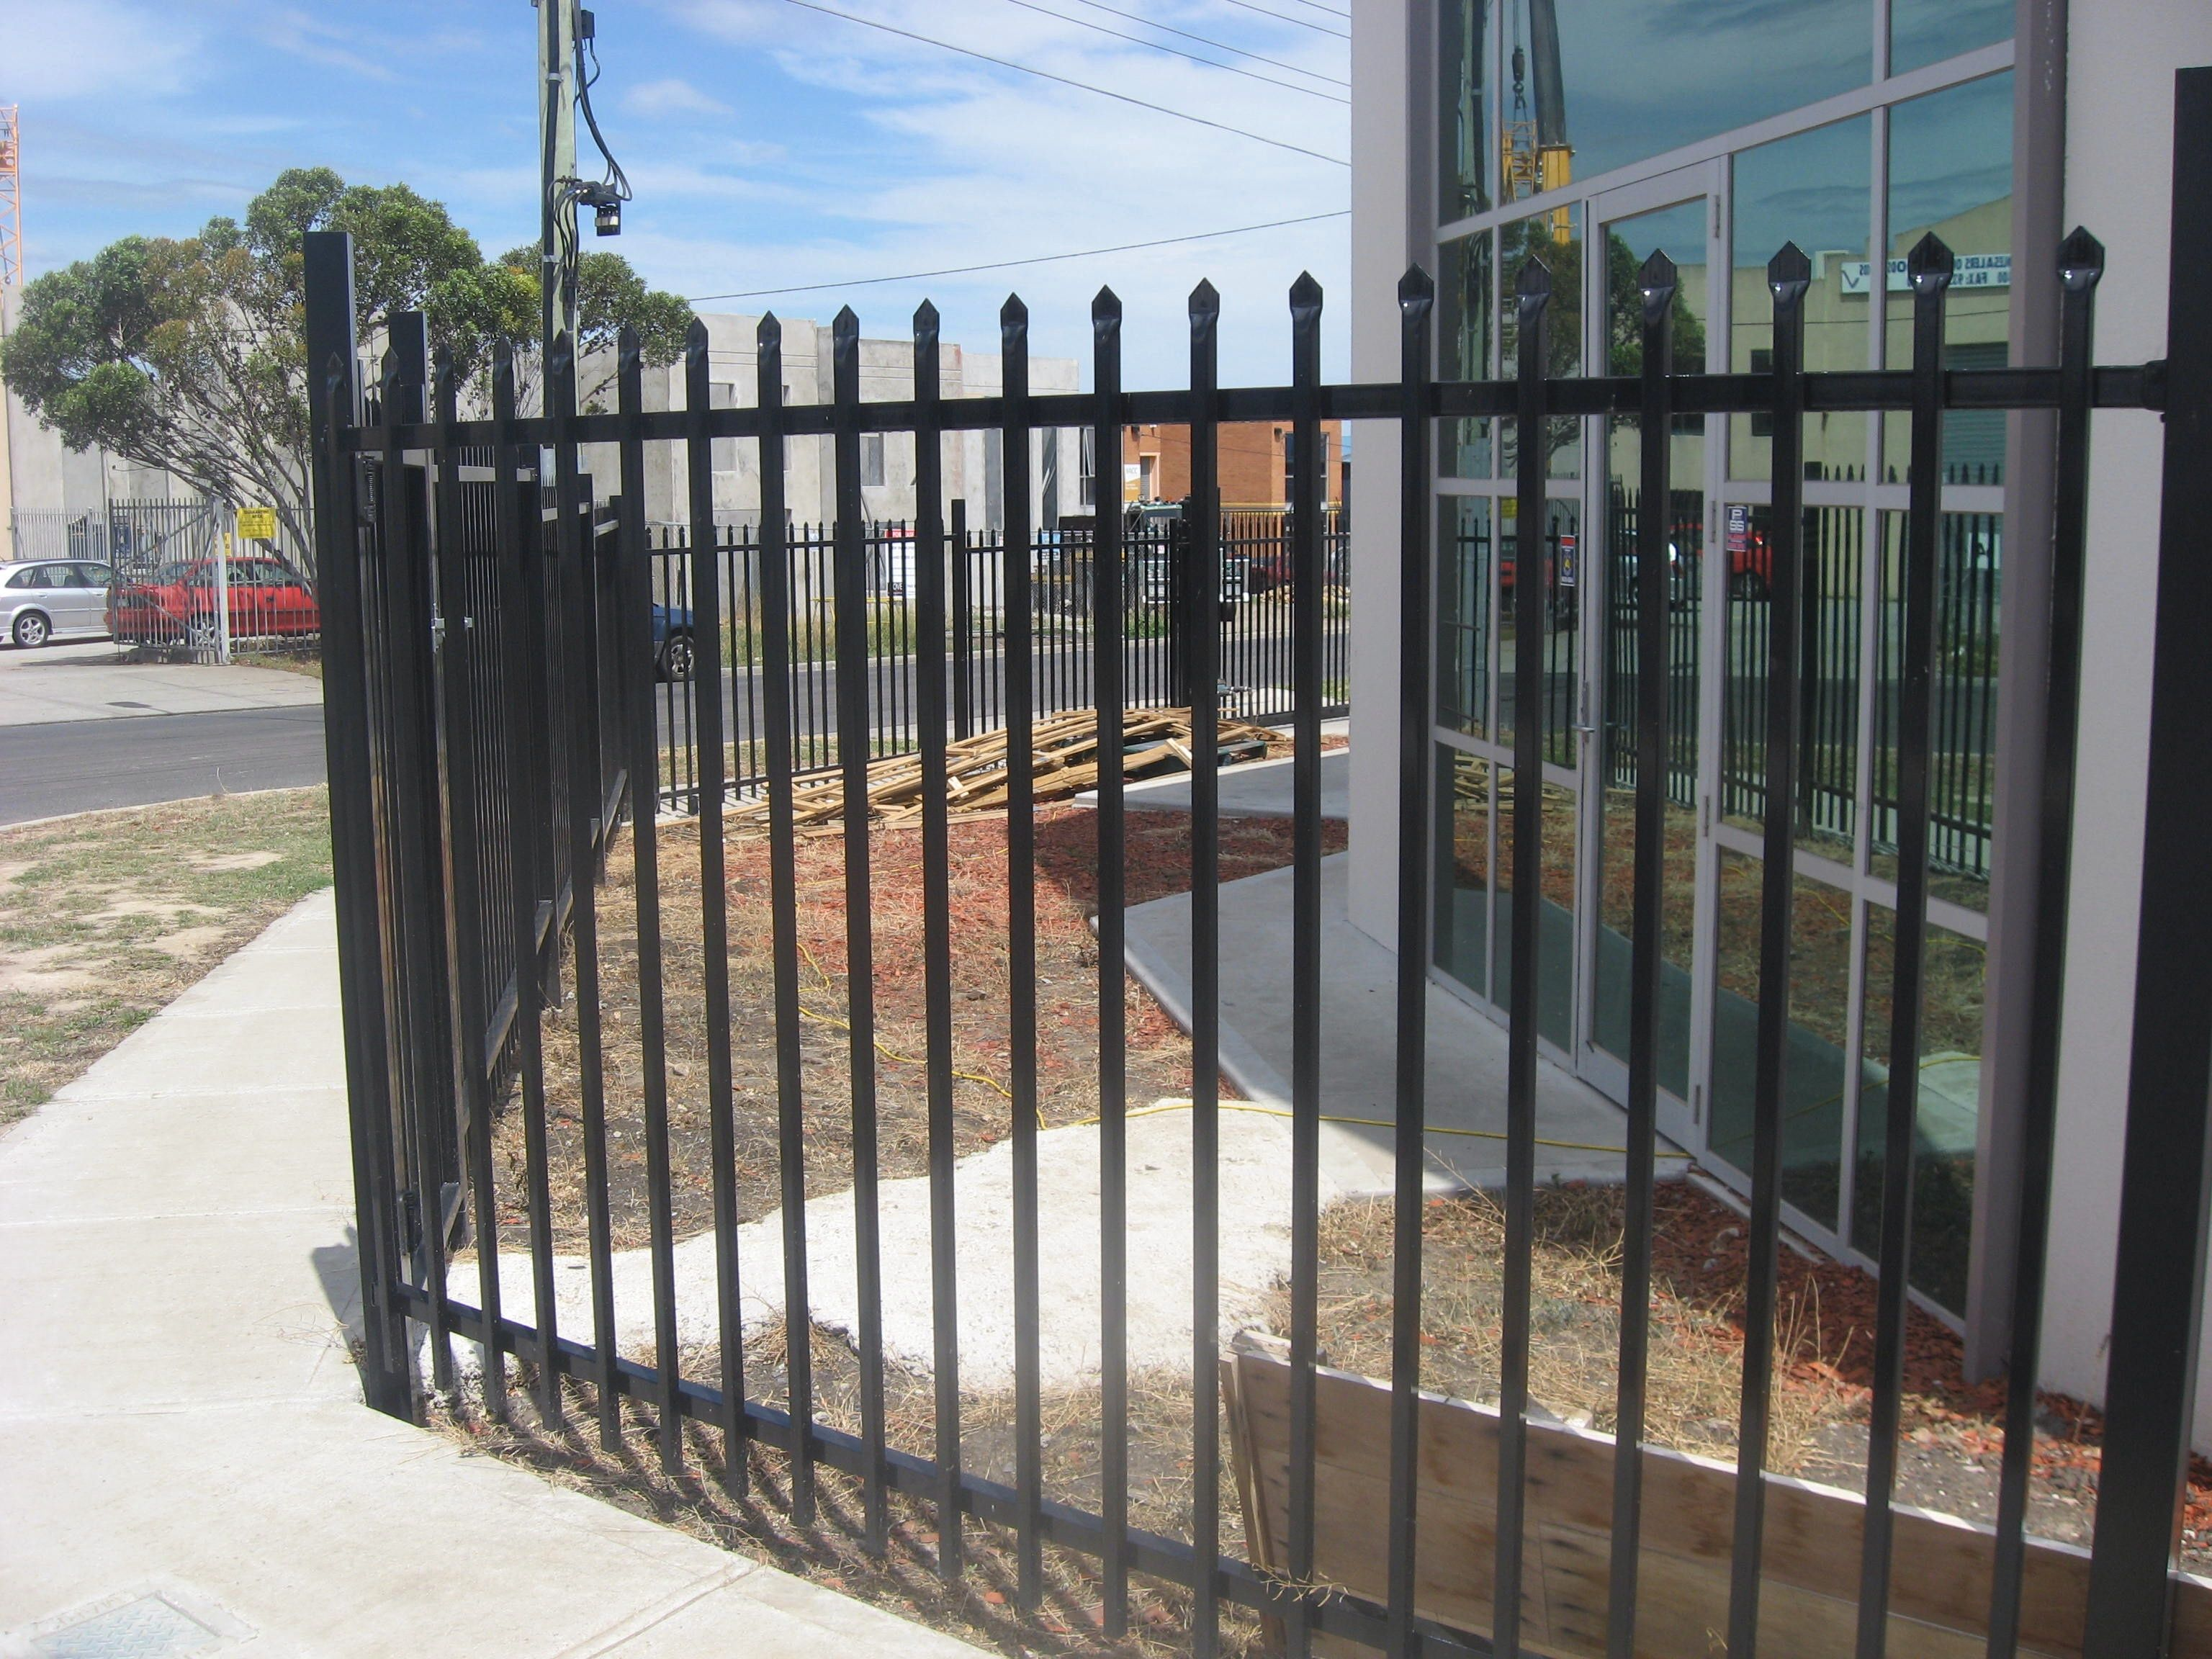 Diy Fences Are Dedicated To Saving Money And They Have Various Uses In People S Everyday Lives Http Www Fencewor Diy Pool Fence Diy Pool Glass Pool Fencing